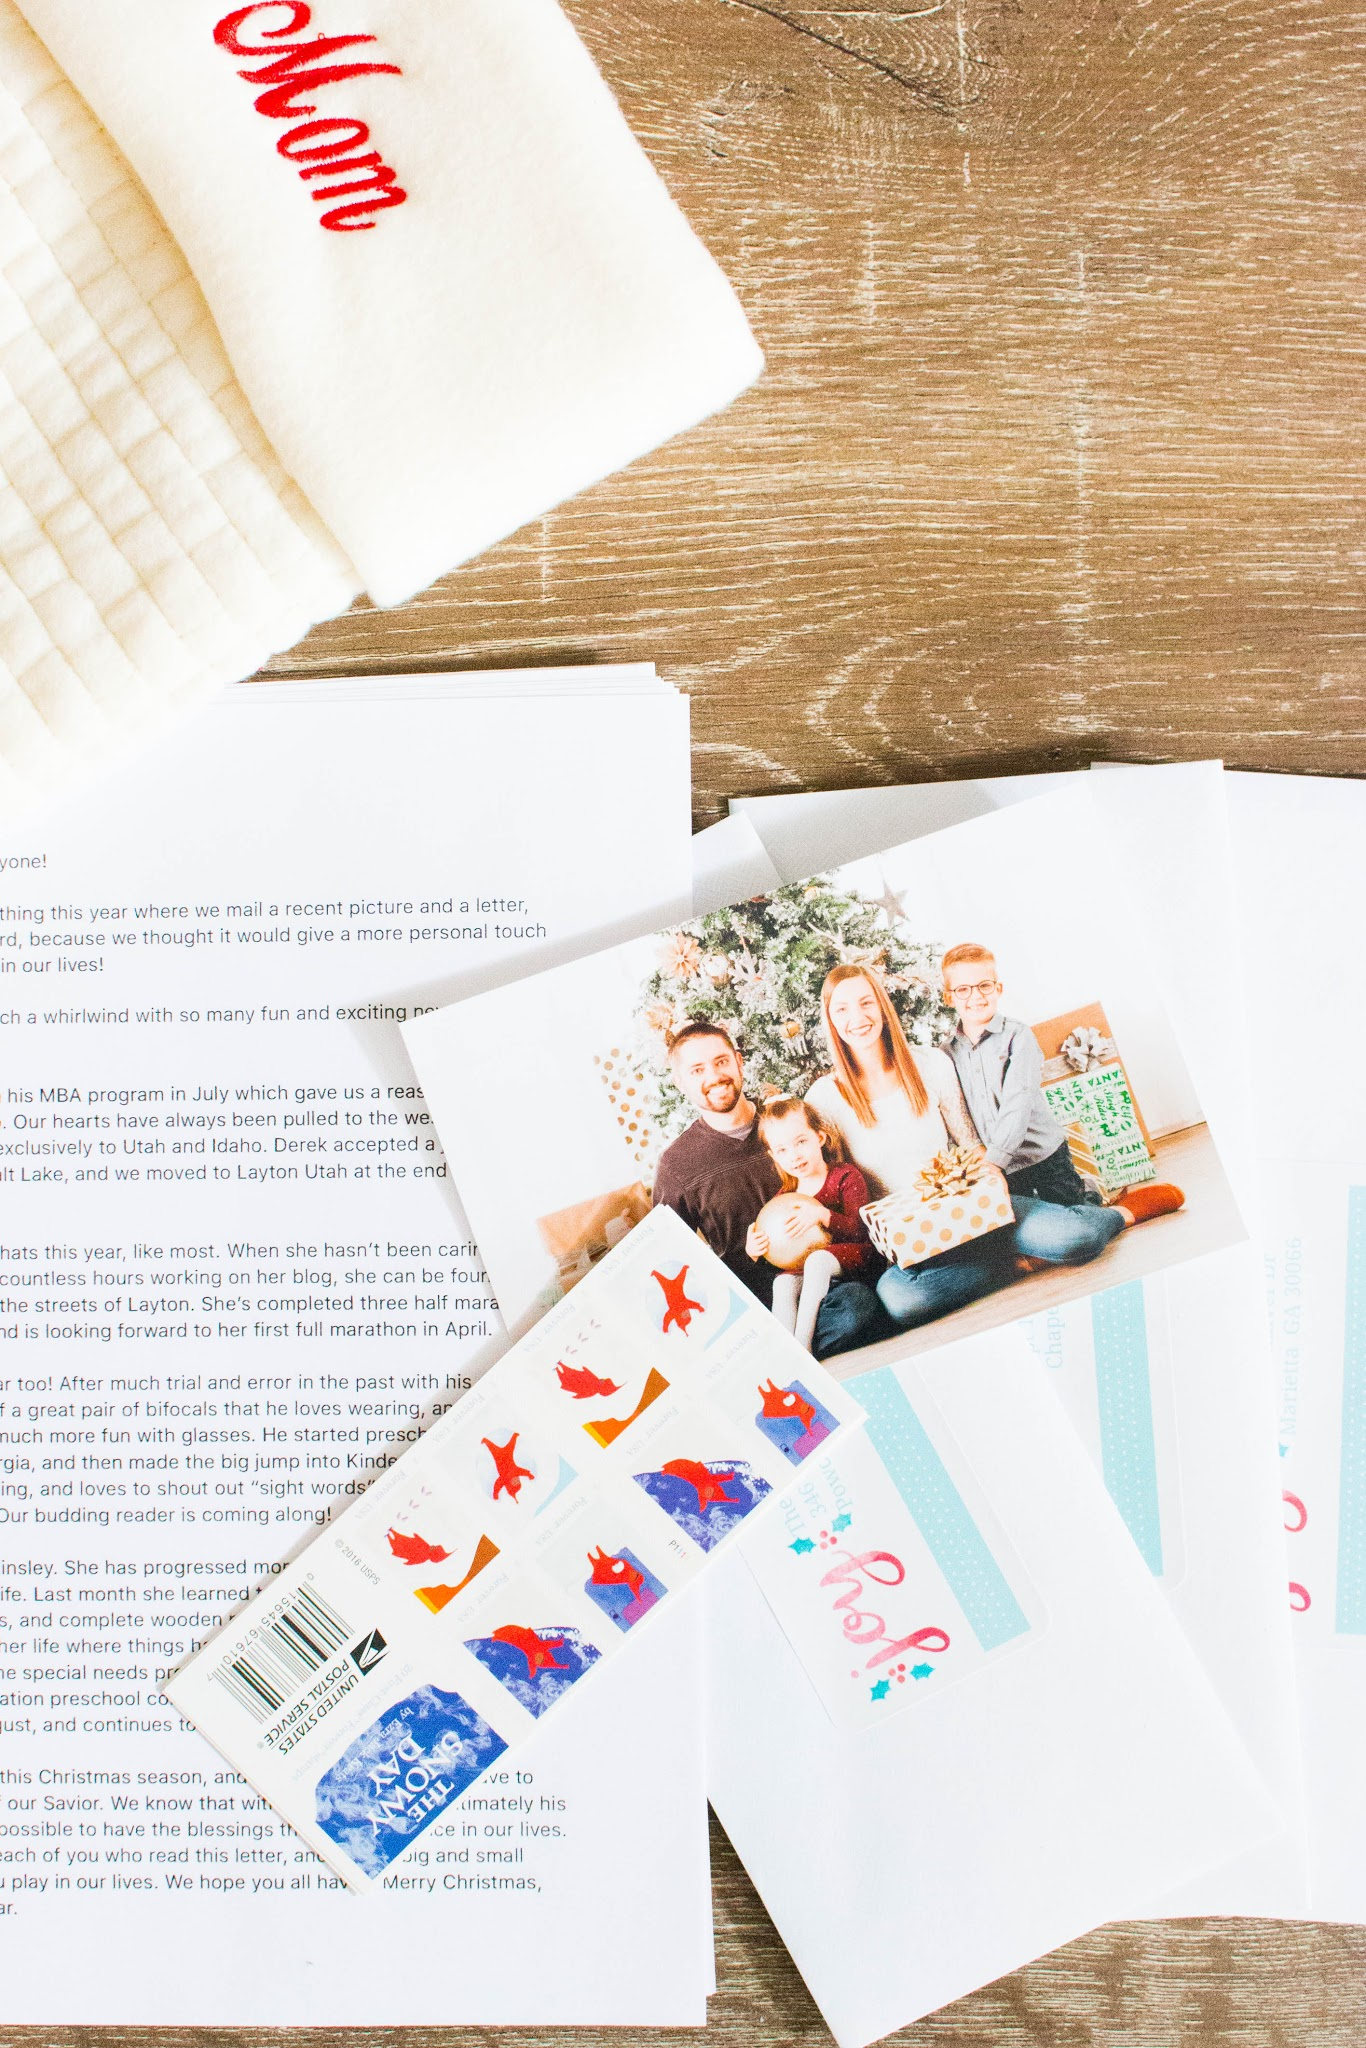 How to save money on Christmas cards. How to save money at Christmas. Saving money for Christmas weekly. Christmas spending tips. Saving for Christmas 2020. Christmas on a budget. Holiday card ideas. How to make cheap holiday cards. #christmas #holiday #cards #family